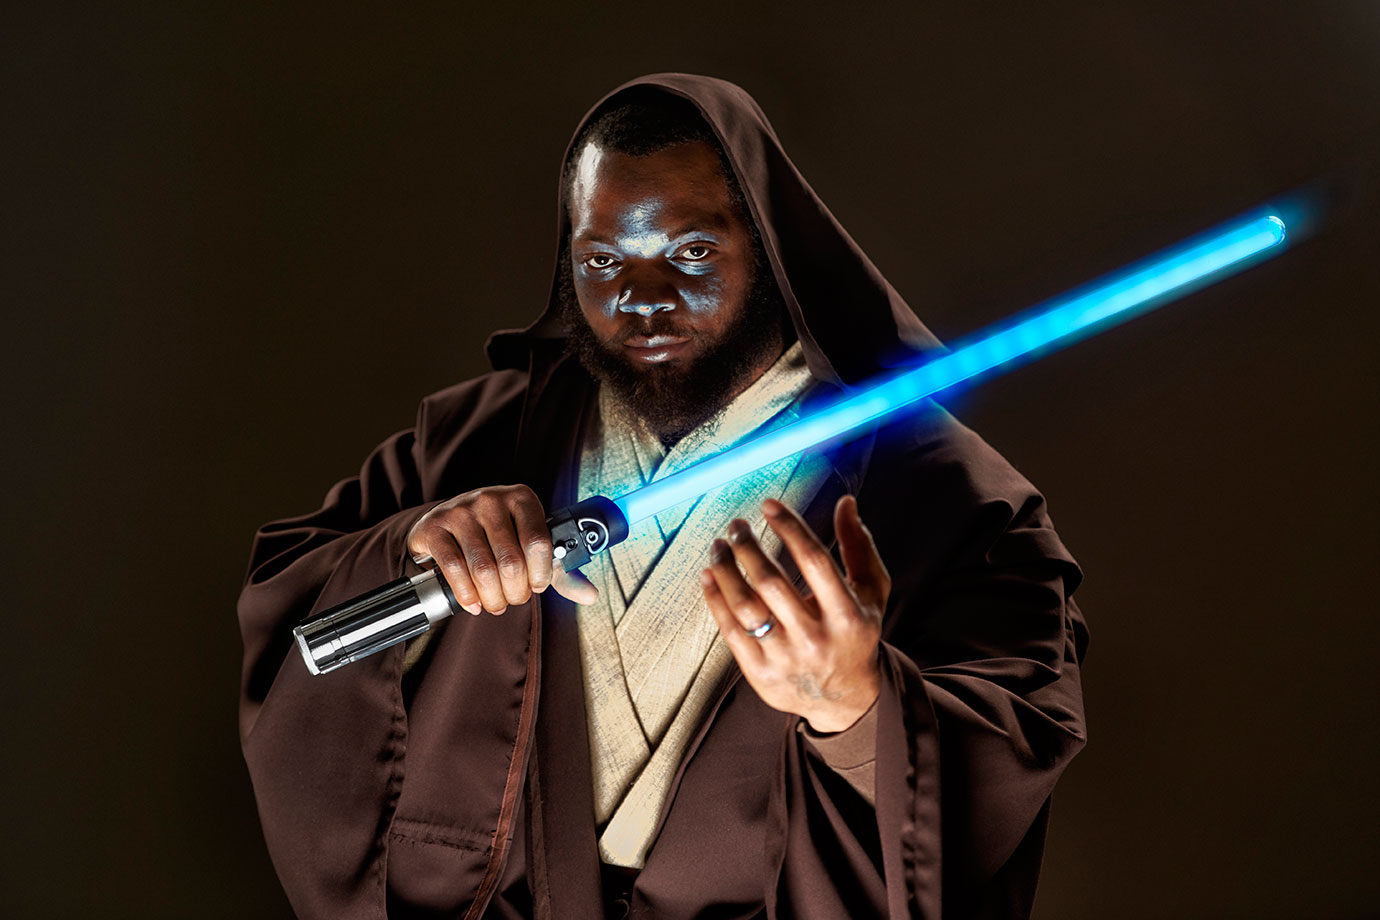 Seattle Seahawks defensive end Michael Bennett poses as a jedi during a photo shoot on Dec. 9, 2015 in Renton, Wash.